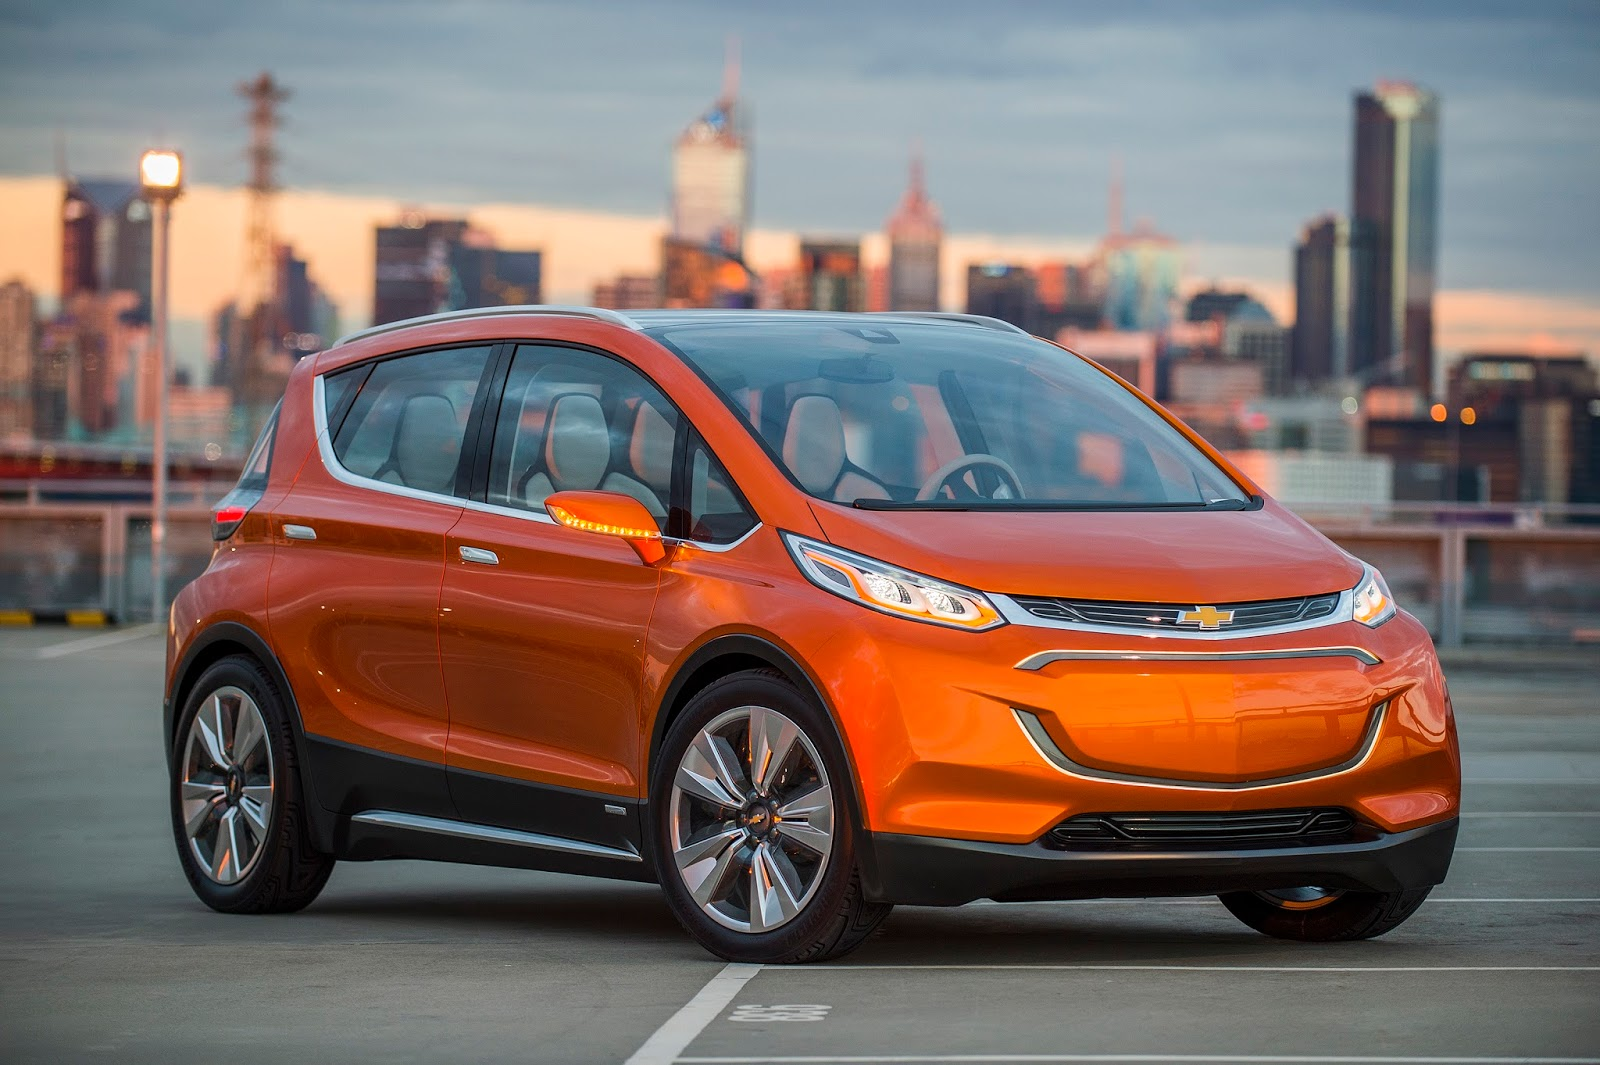 cars with cords tesla model 3 vs chevy bolt charging network tips the scales. Black Bedroom Furniture Sets. Home Design Ideas